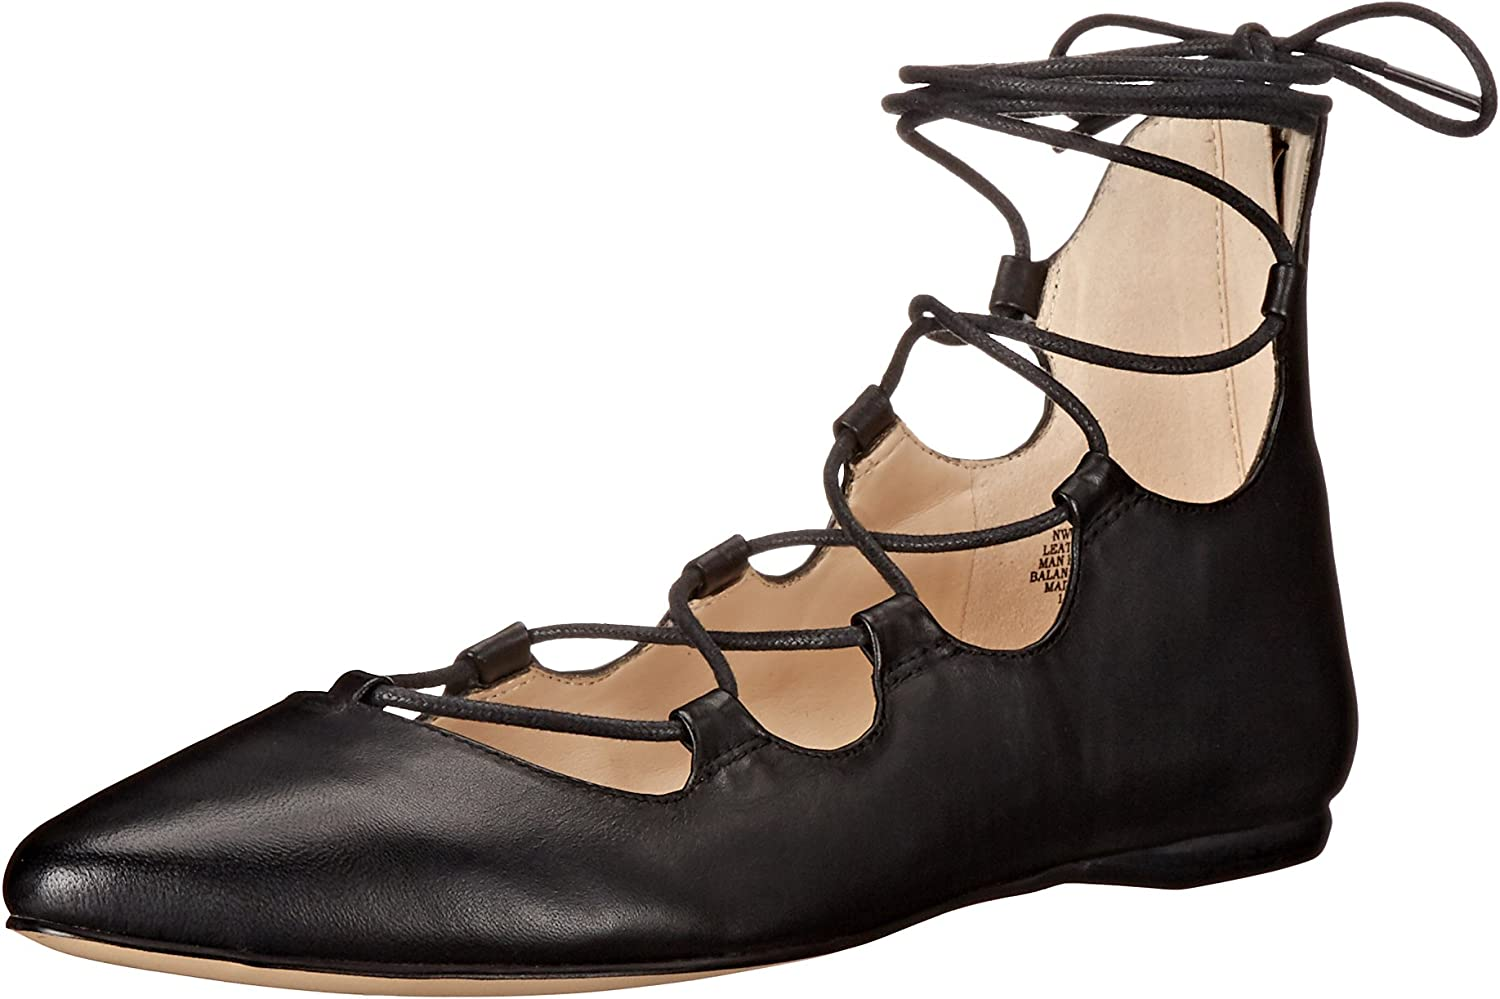 Nine West Womens Signmeup Leather Ballet Flat